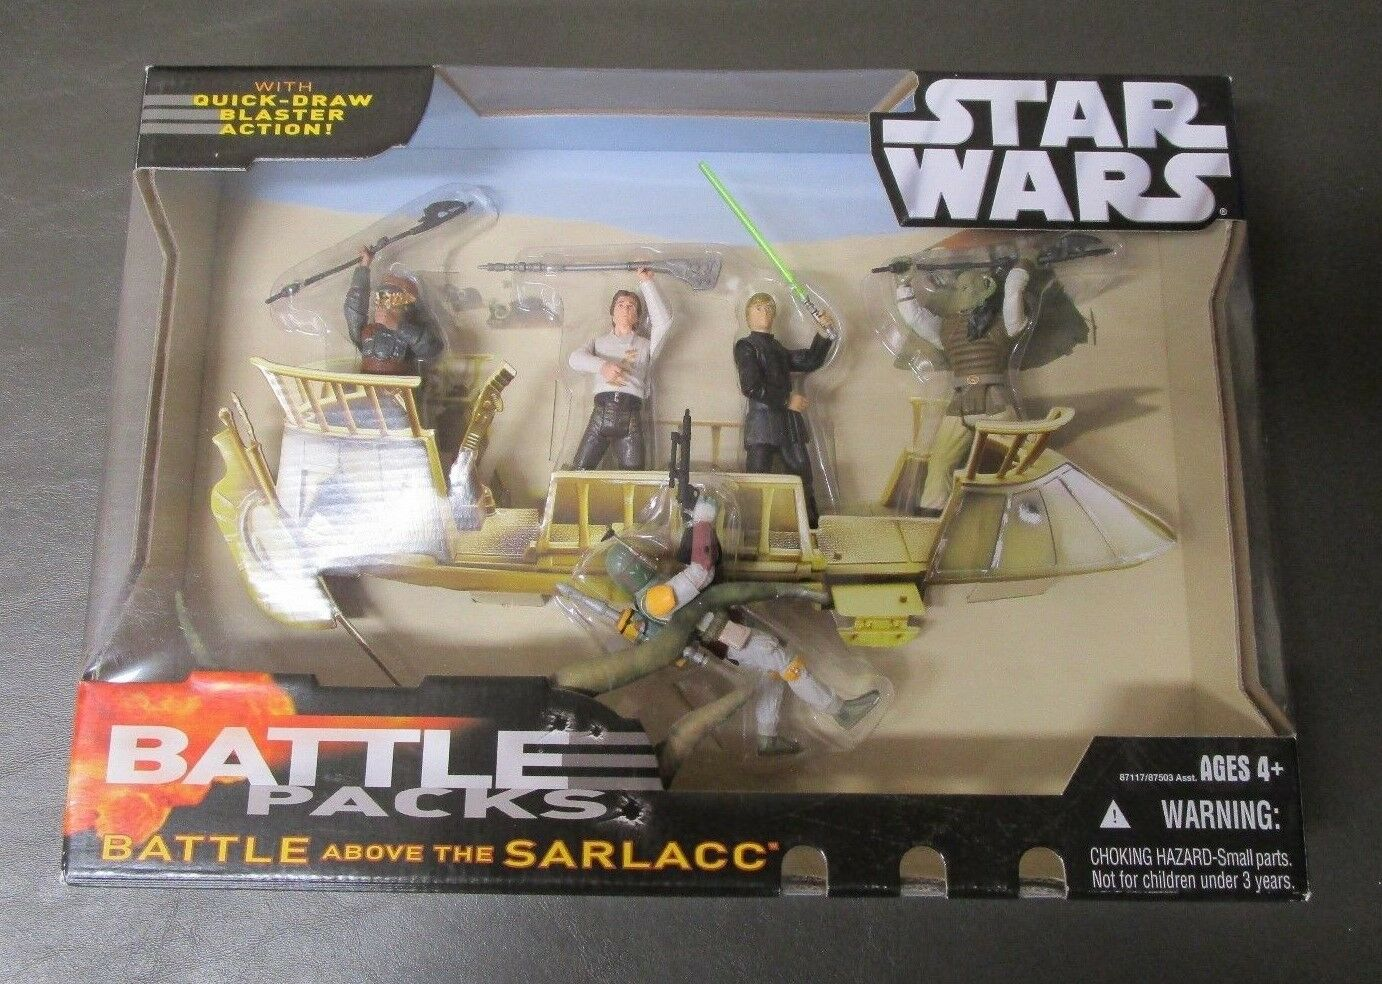 Battle Above the Sarlacc 2005 STAR WARS Revenge of the Sith Battle Pack Packs